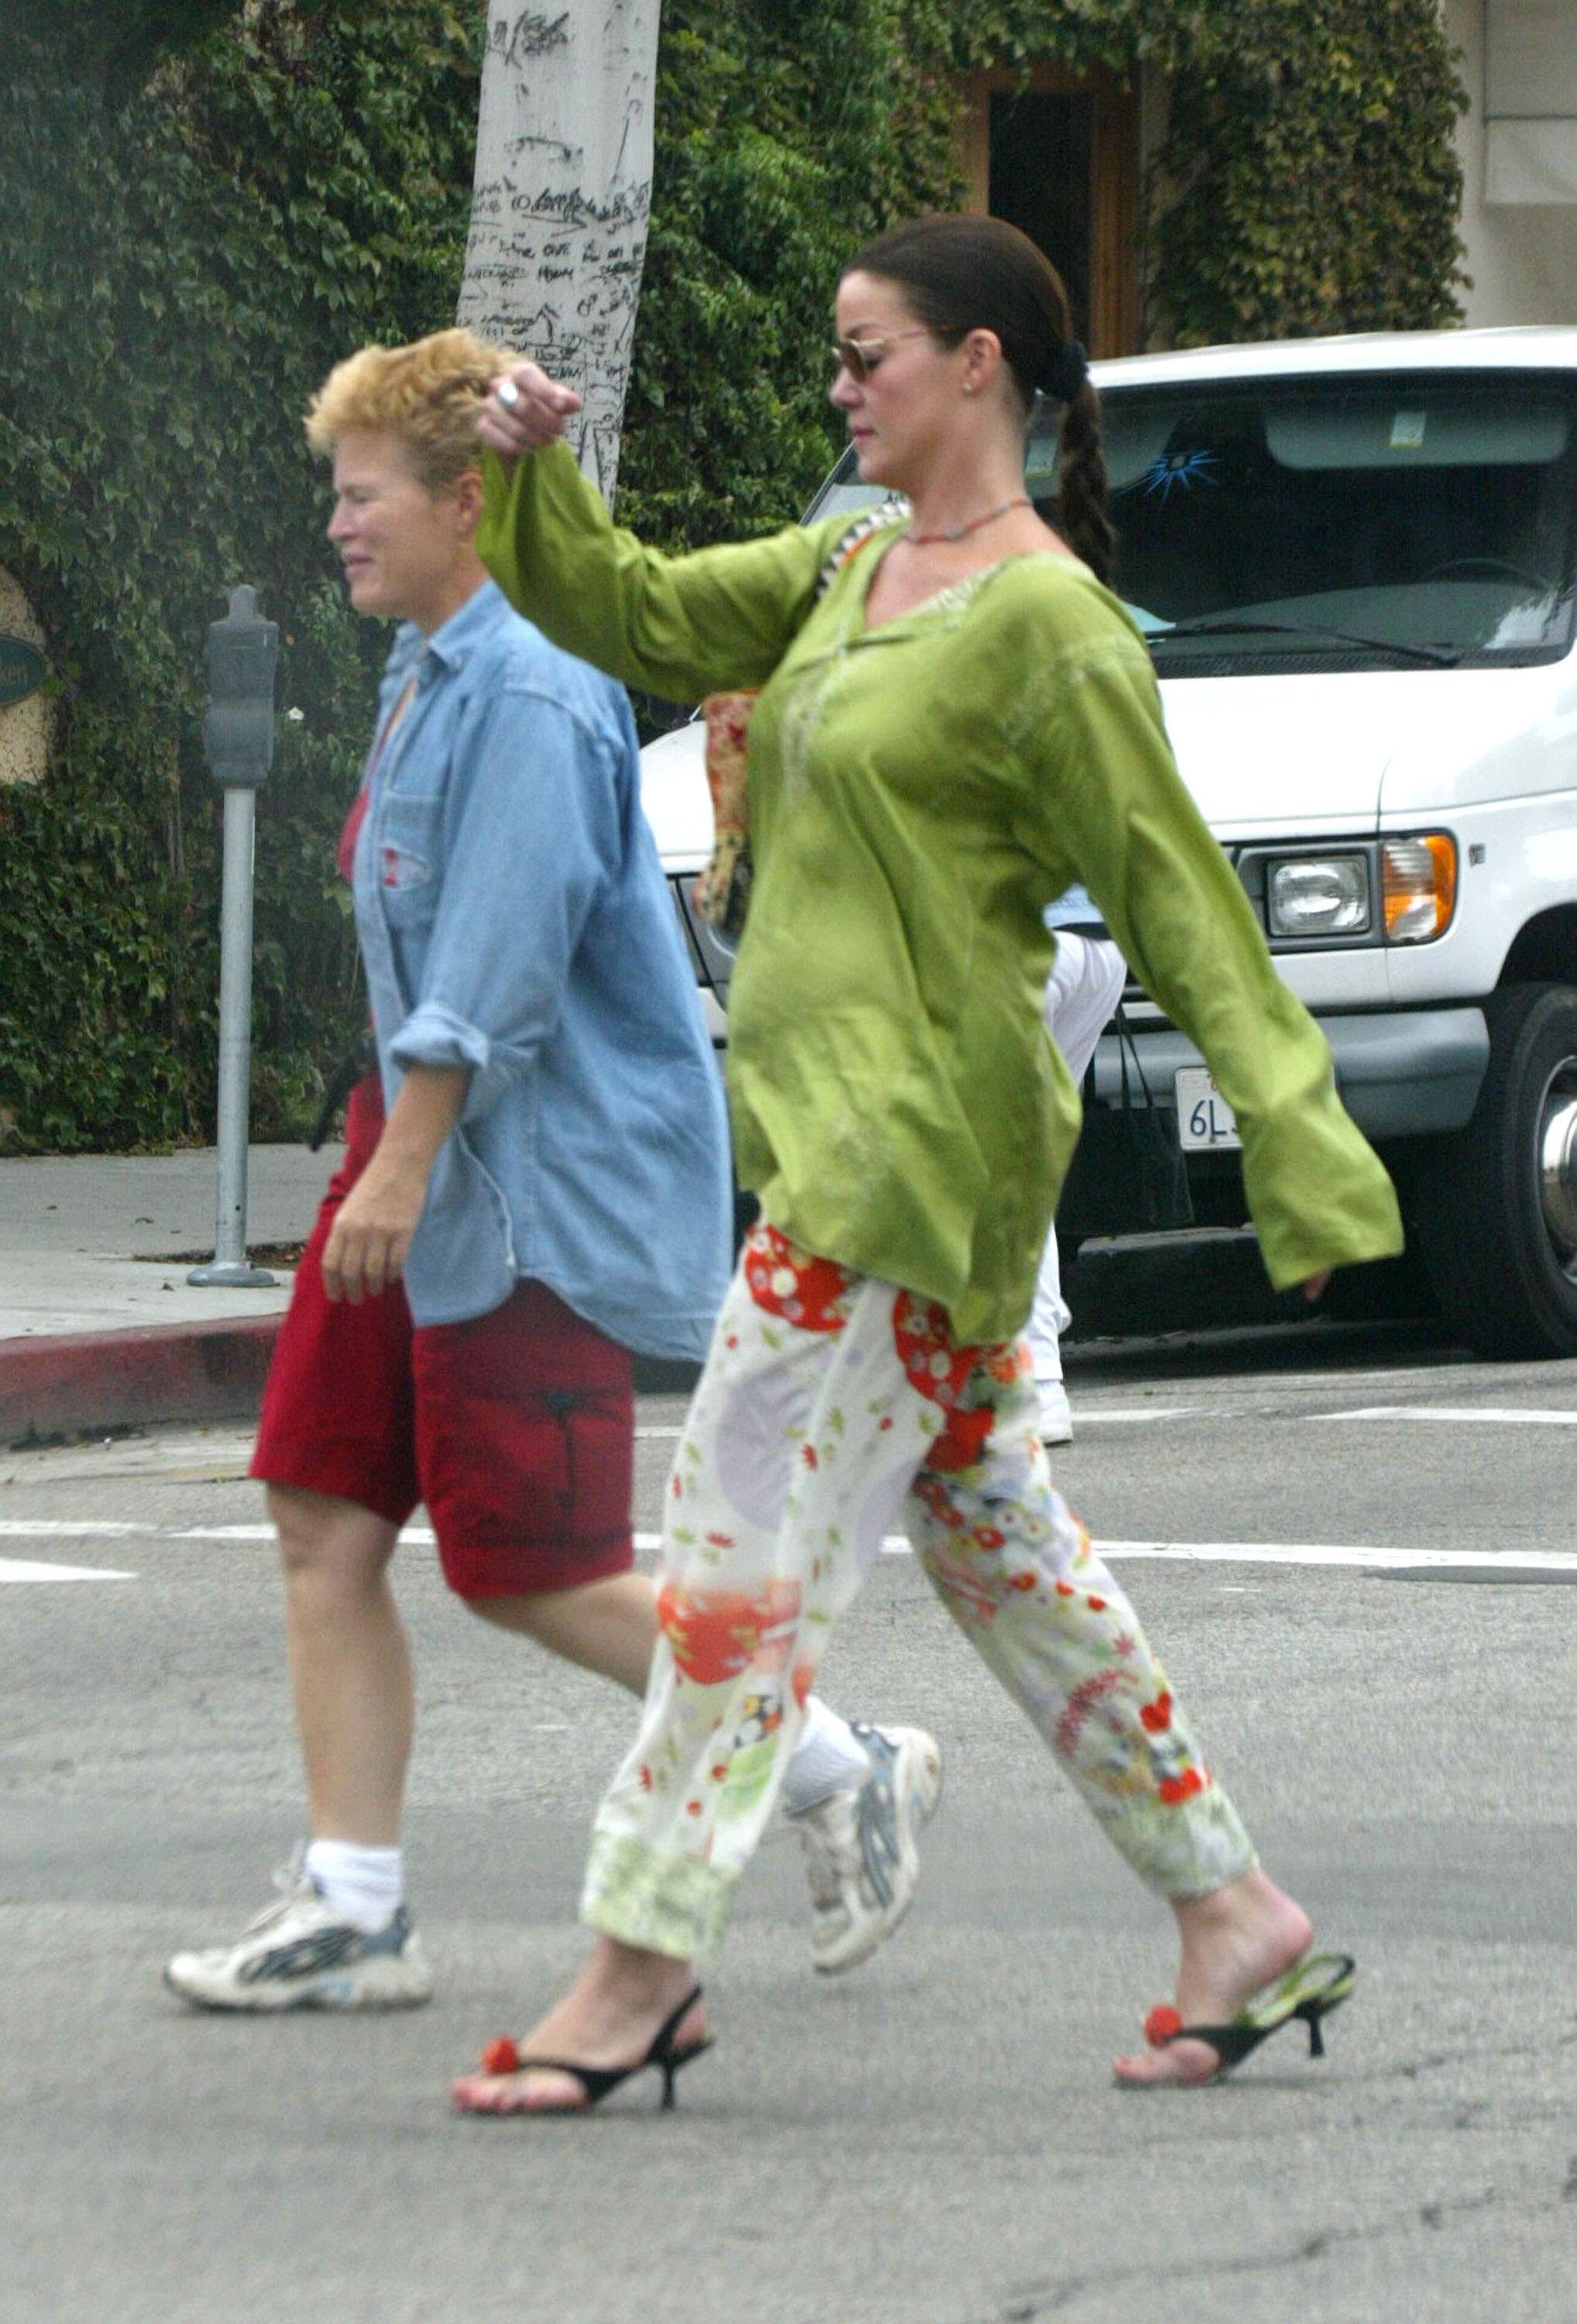 Claudia Christian in a very fun outfit walking with a friend